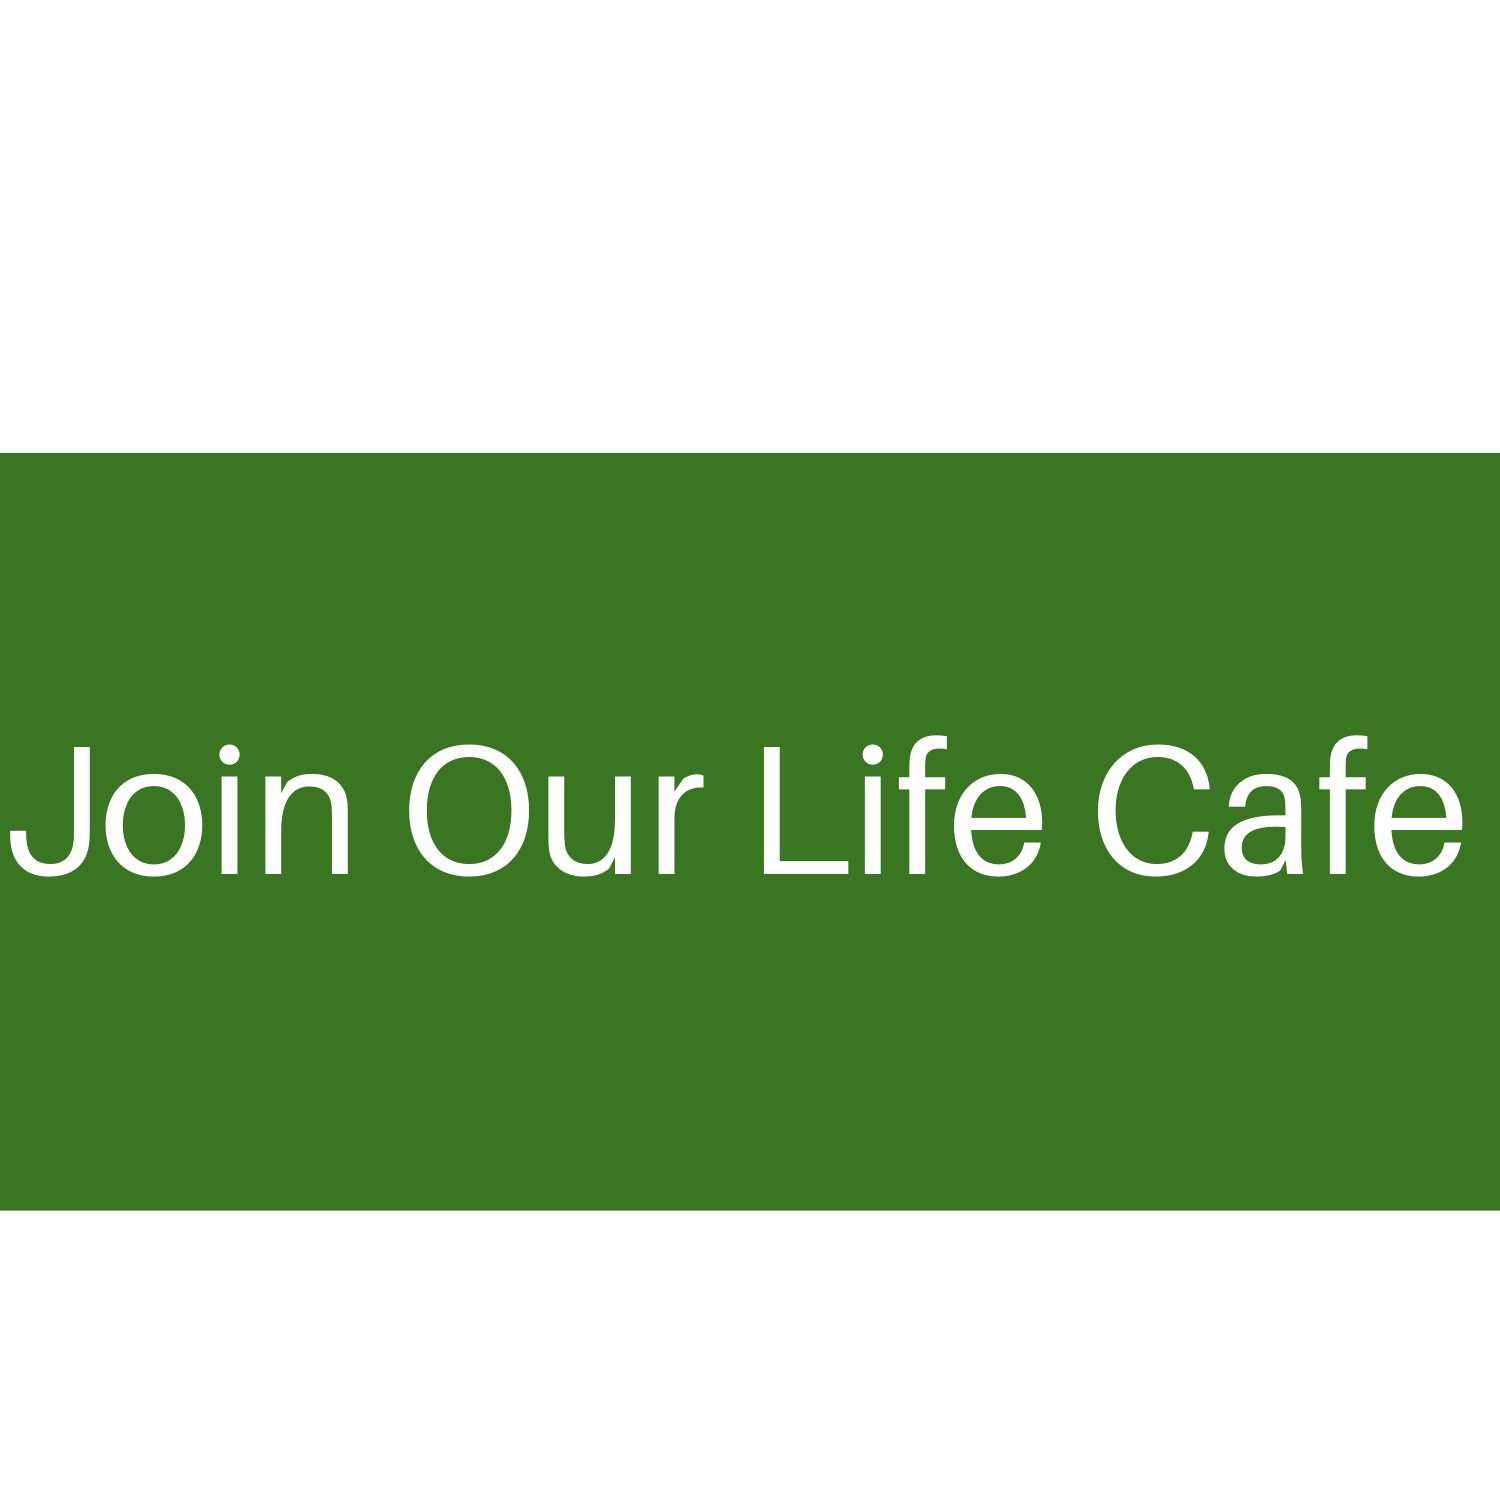 Join Our Life Cafe